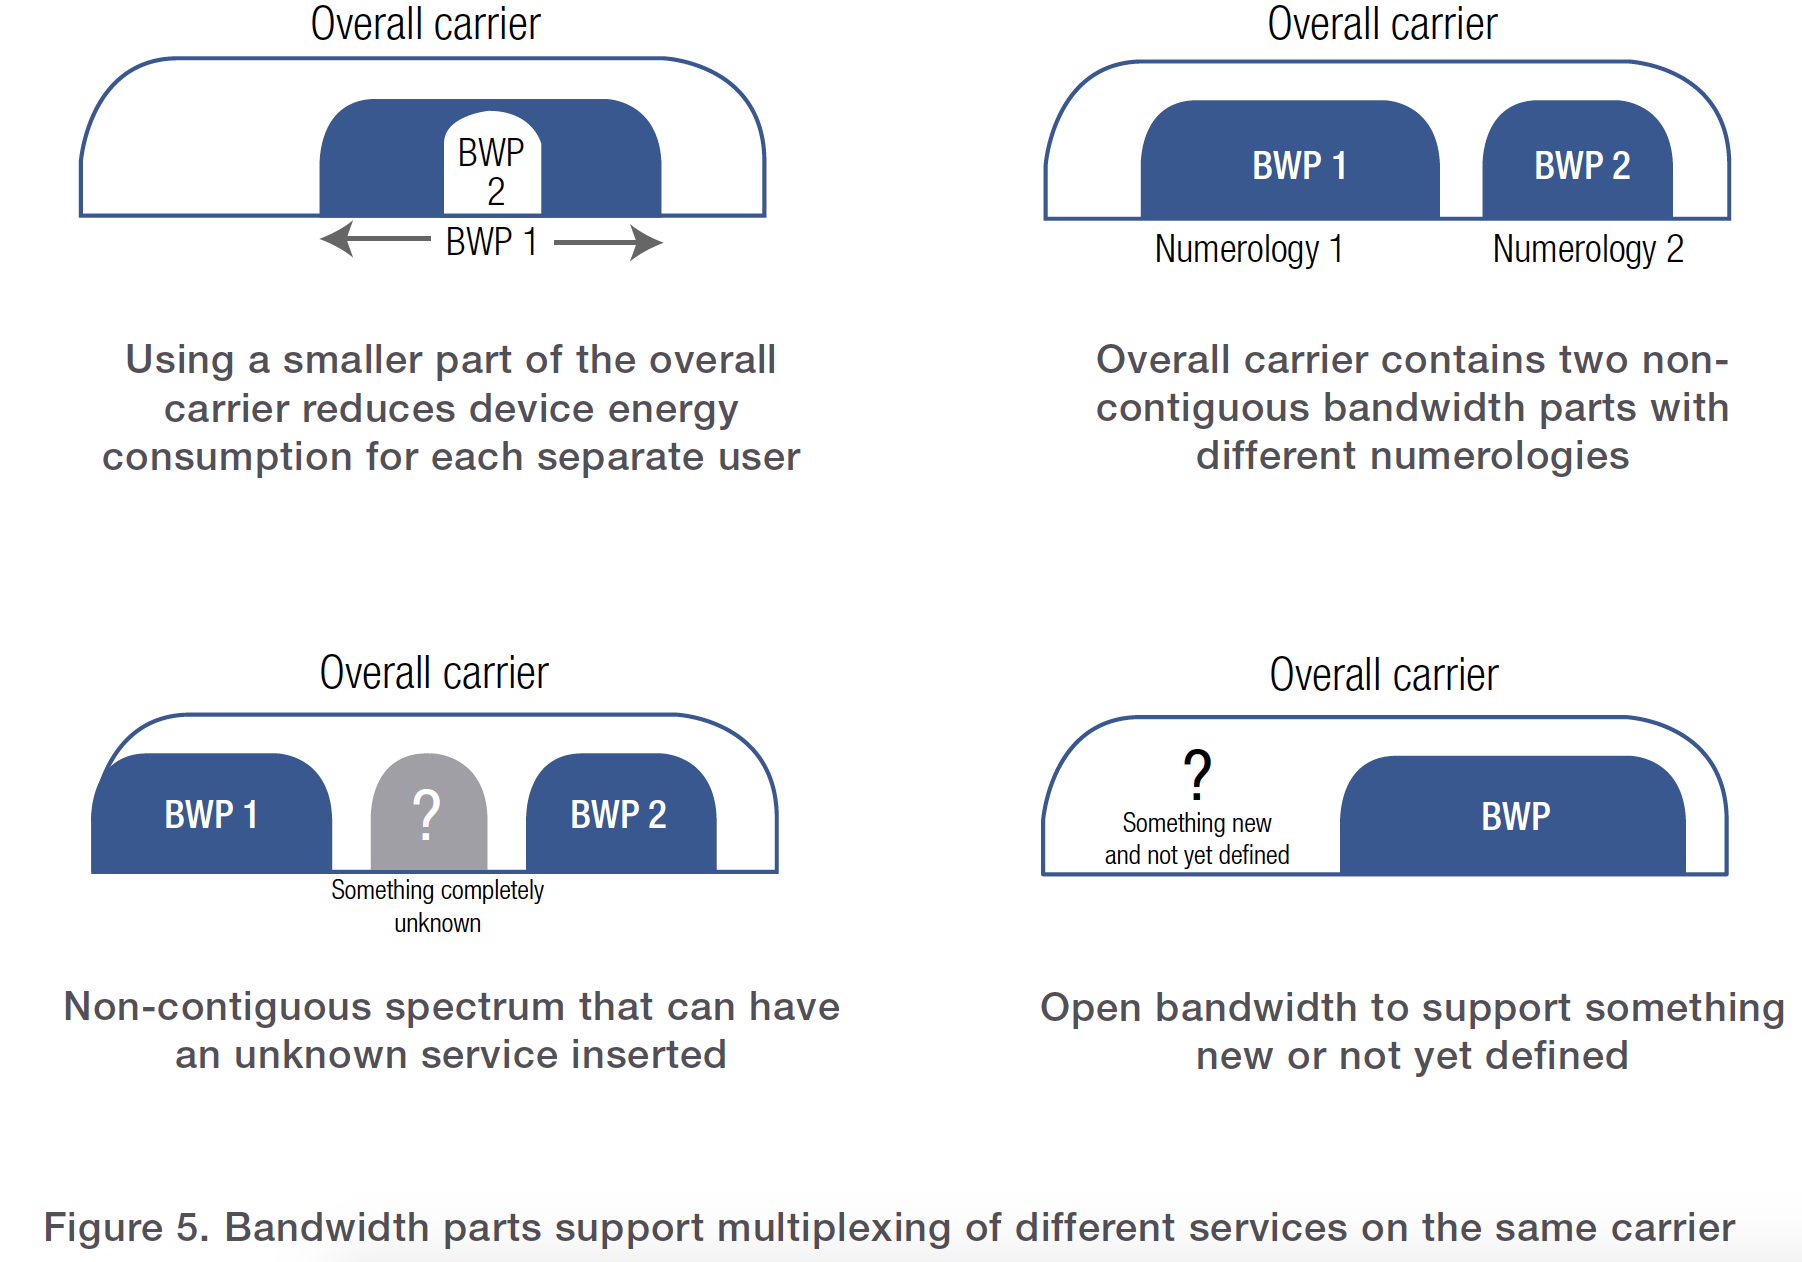 Figure 5. Bandwidth parts support multiplexing of different services on the same carrier